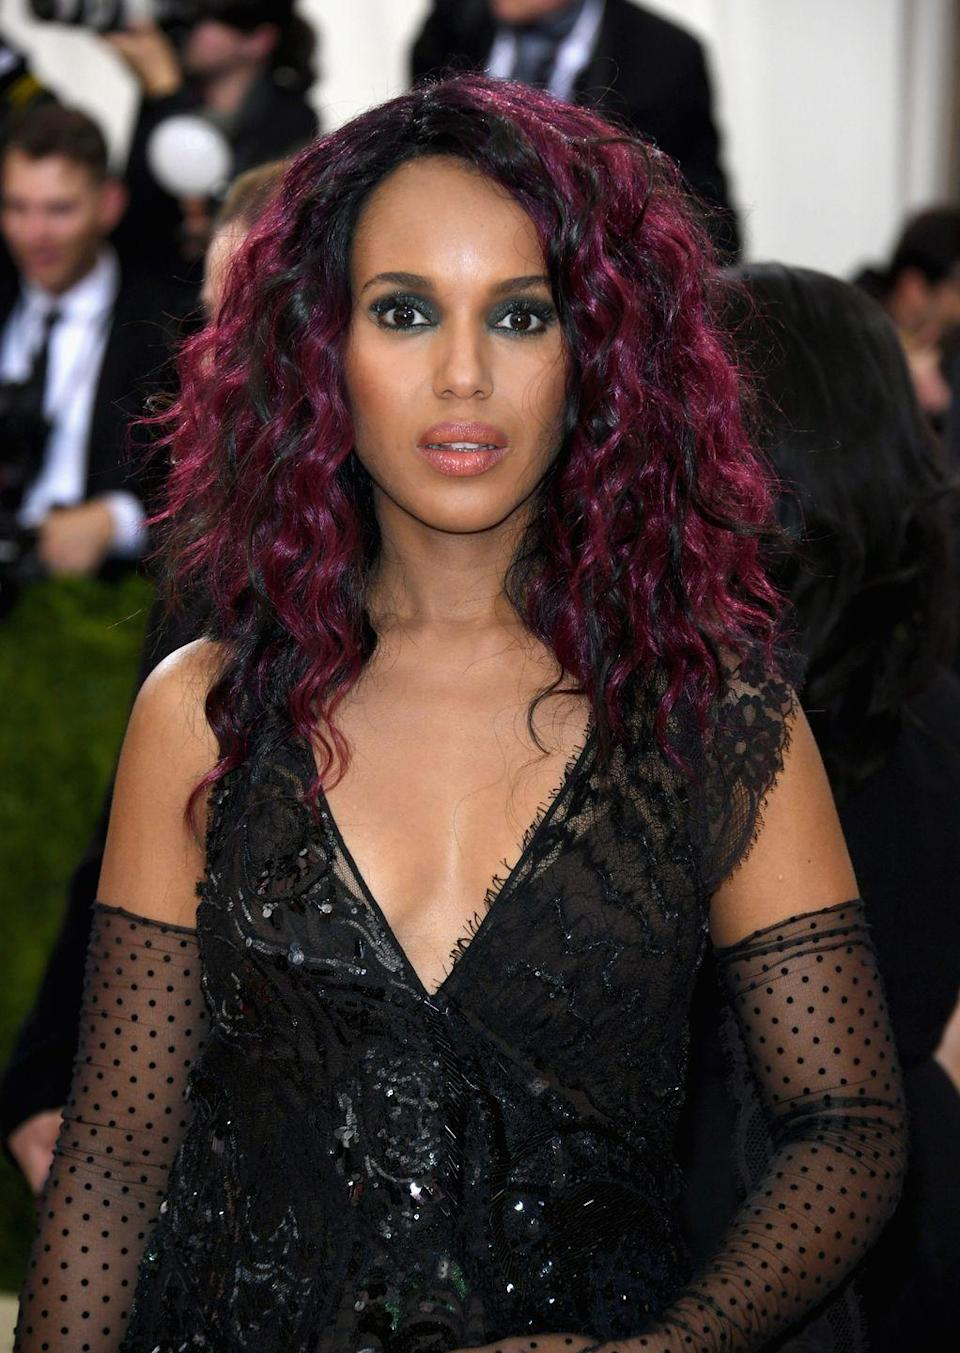 """<p>If you're not ready to commit to an all-over dye job, highlights are the perfect solution. Just ask <a href=""""https://www.oprahmag.com/beauty/skin-makeup/a25843904/kerry-washington-skin-routine/"""" rel=""""nofollow noopener"""" target=""""_blank"""" data-ylk=""""slk:Kerry Washington"""" class=""""link rapid-noclick-resp"""">Kerry Washington</a>, who upped the drama when she attended the 2016 Met Gala. </p><p>""""Adding a touch of color with burgundy highlights provides a splash of intrigue without going overboard,"""" says Boychuck. """"Pair it with a cute <a href=""""https://www.oprahmag.com/beauty/hair/g25382071/best-celebrity-hairstyles/"""" rel=""""nofollow noopener"""" target=""""_blank"""" data-ylk=""""slk:pixie cut"""" class=""""link rapid-noclick-resp"""">pixie cut</a>, and you have your professional look nailed.""""</p>"""